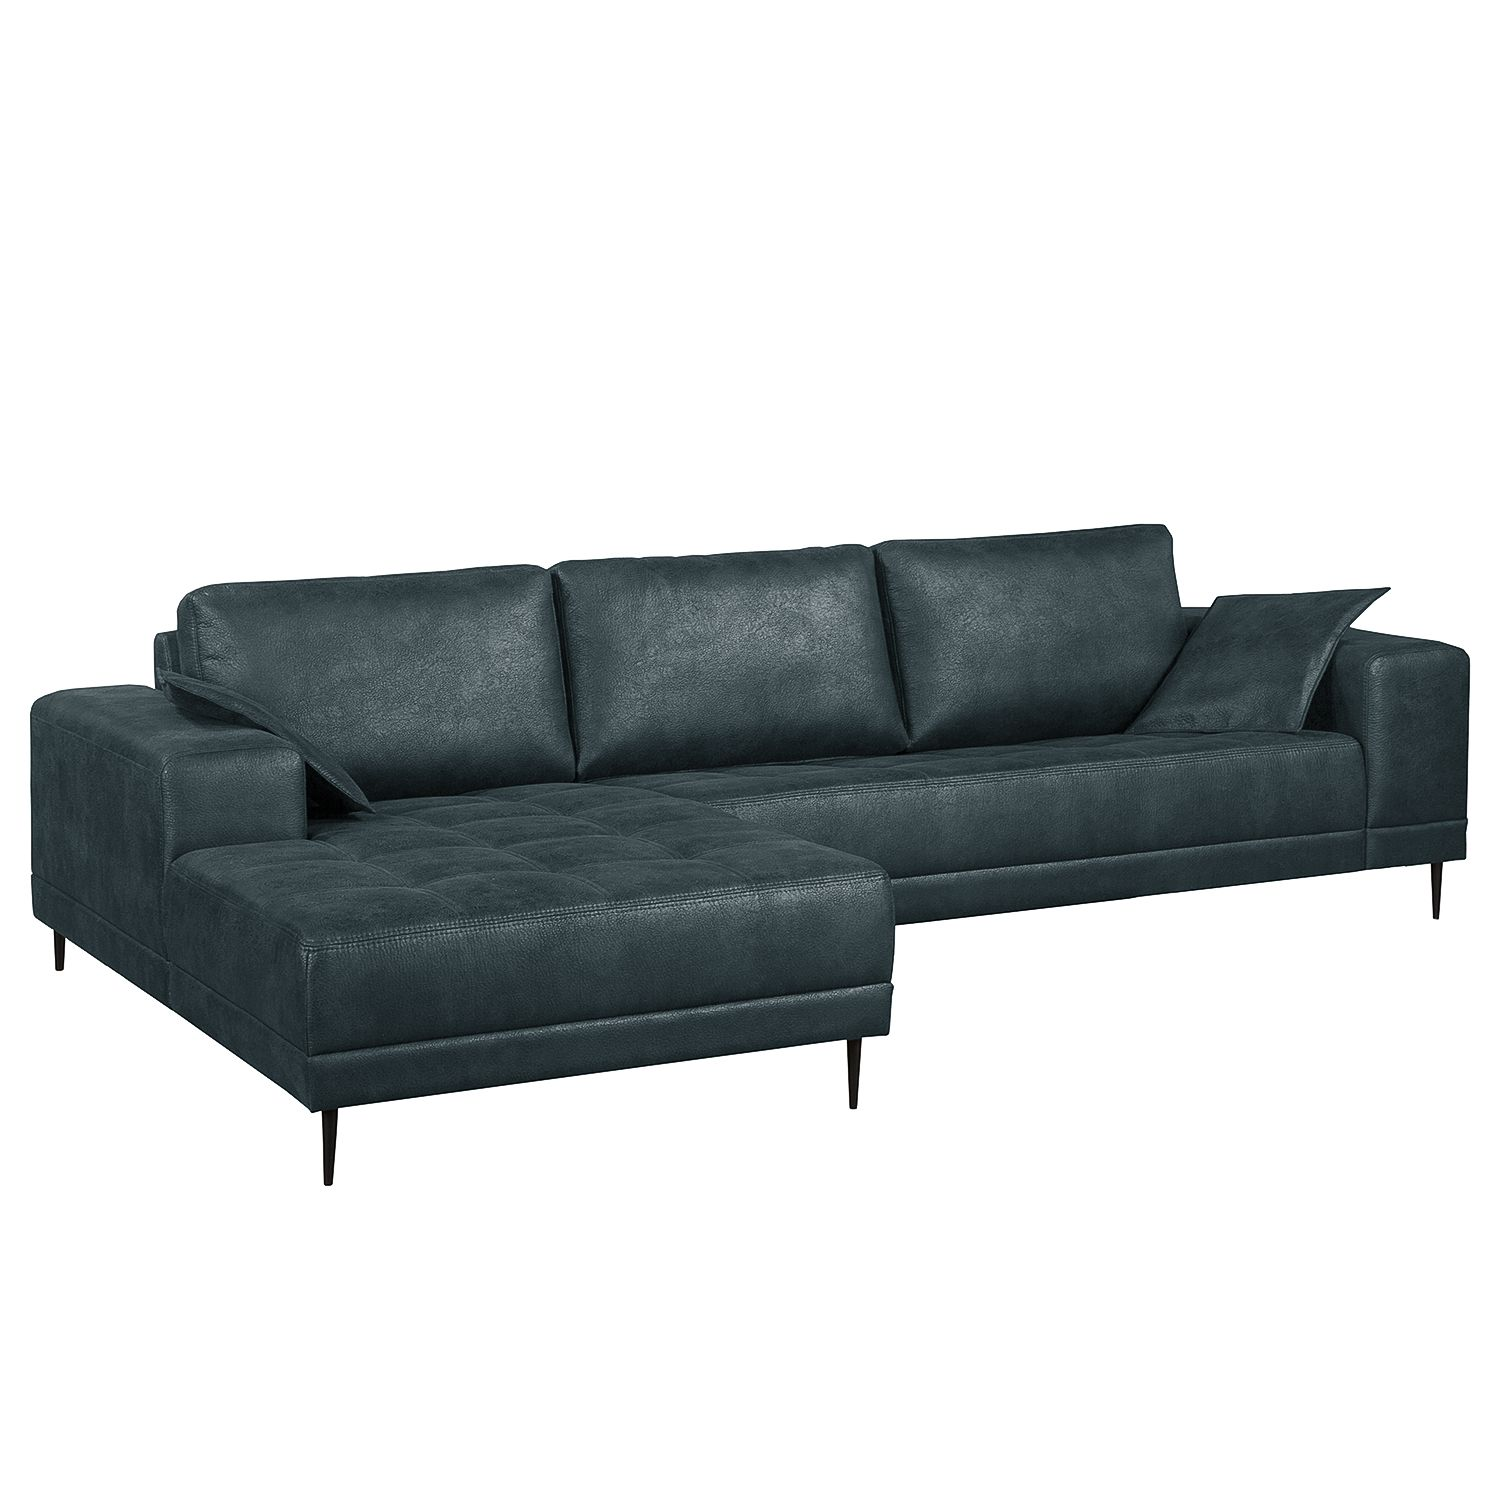 Ecksofa Flesk - Antiklederlook - Ottomane davorstehend links - Ohne Hocker - Anthrazit, ars manufacti